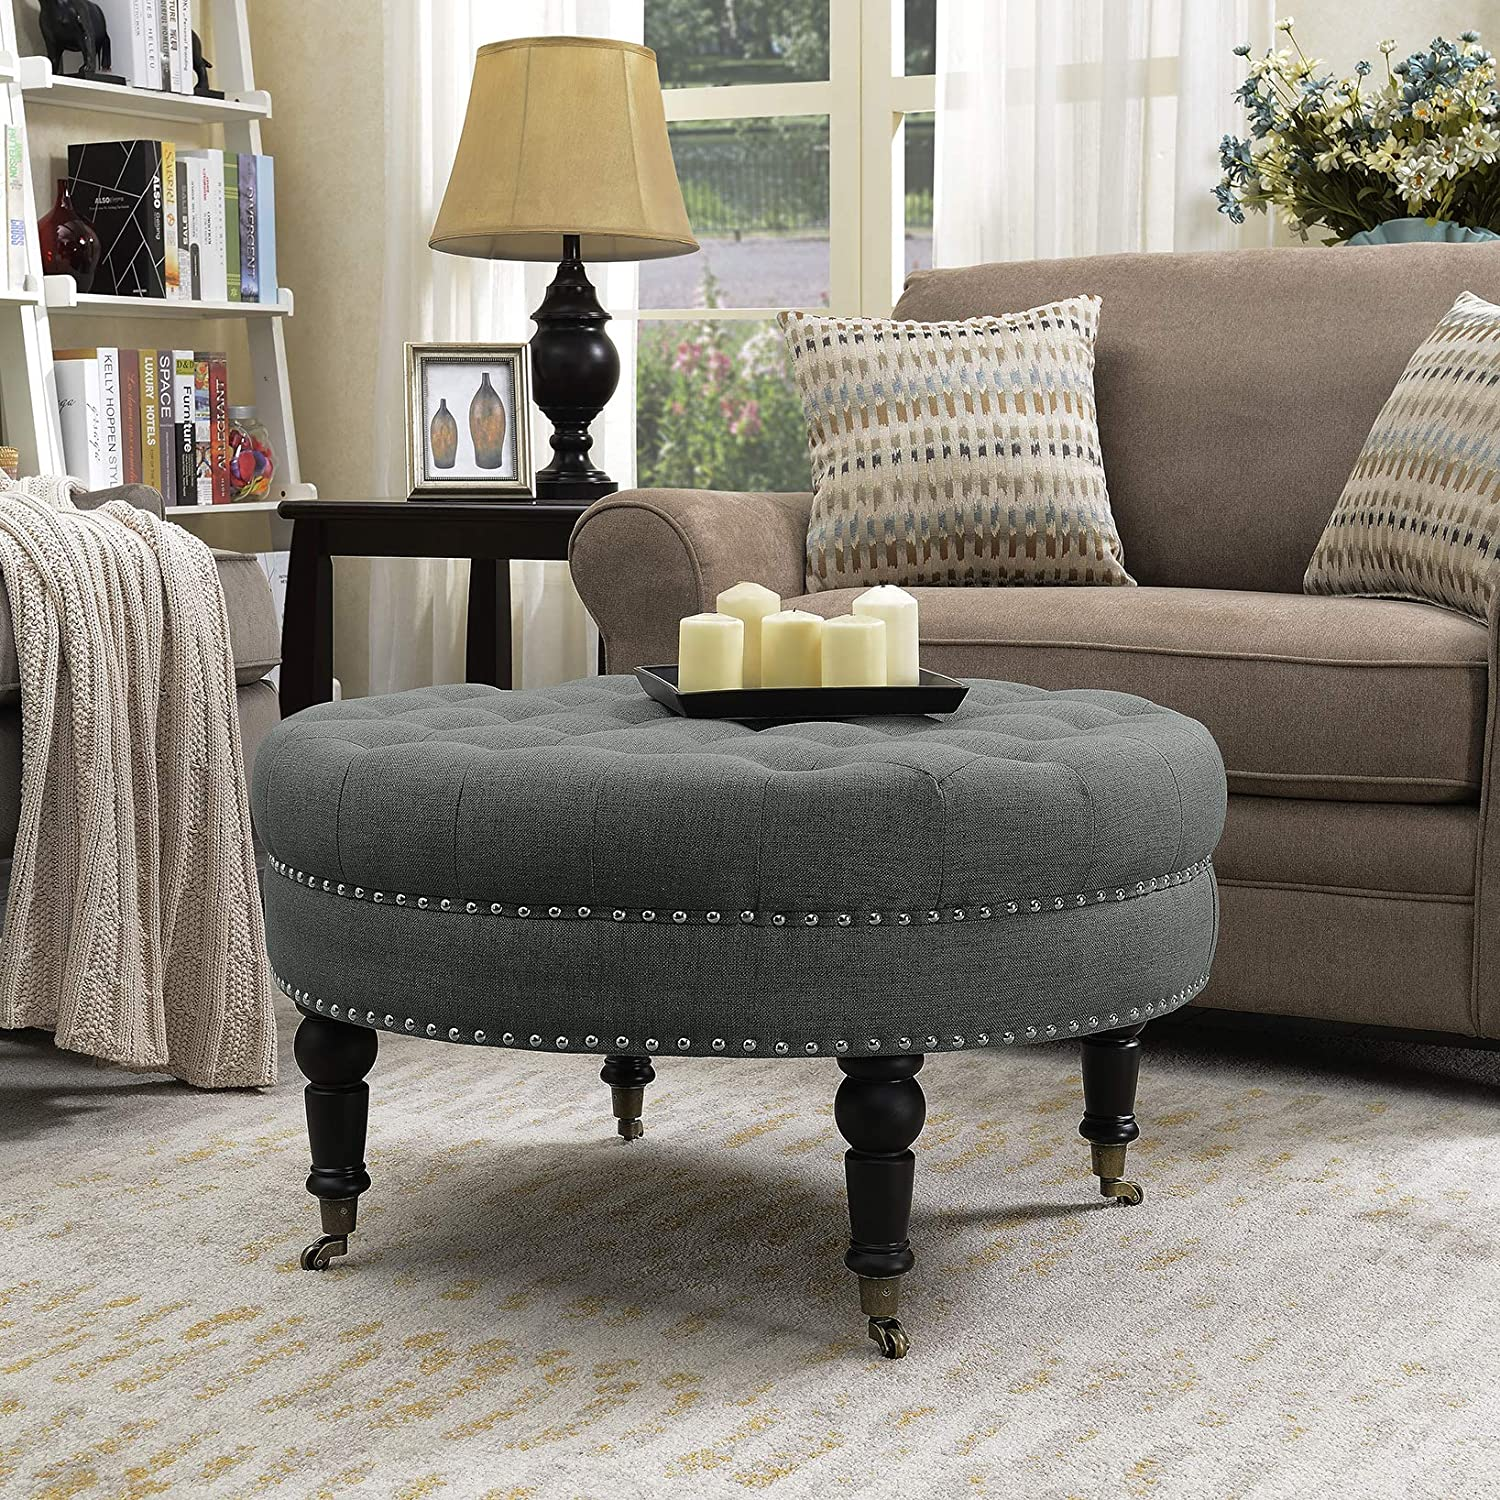 Belleze 33 inch Round Tufted Linen Ottoman Large Footstool Cocktail with Caster, Gray